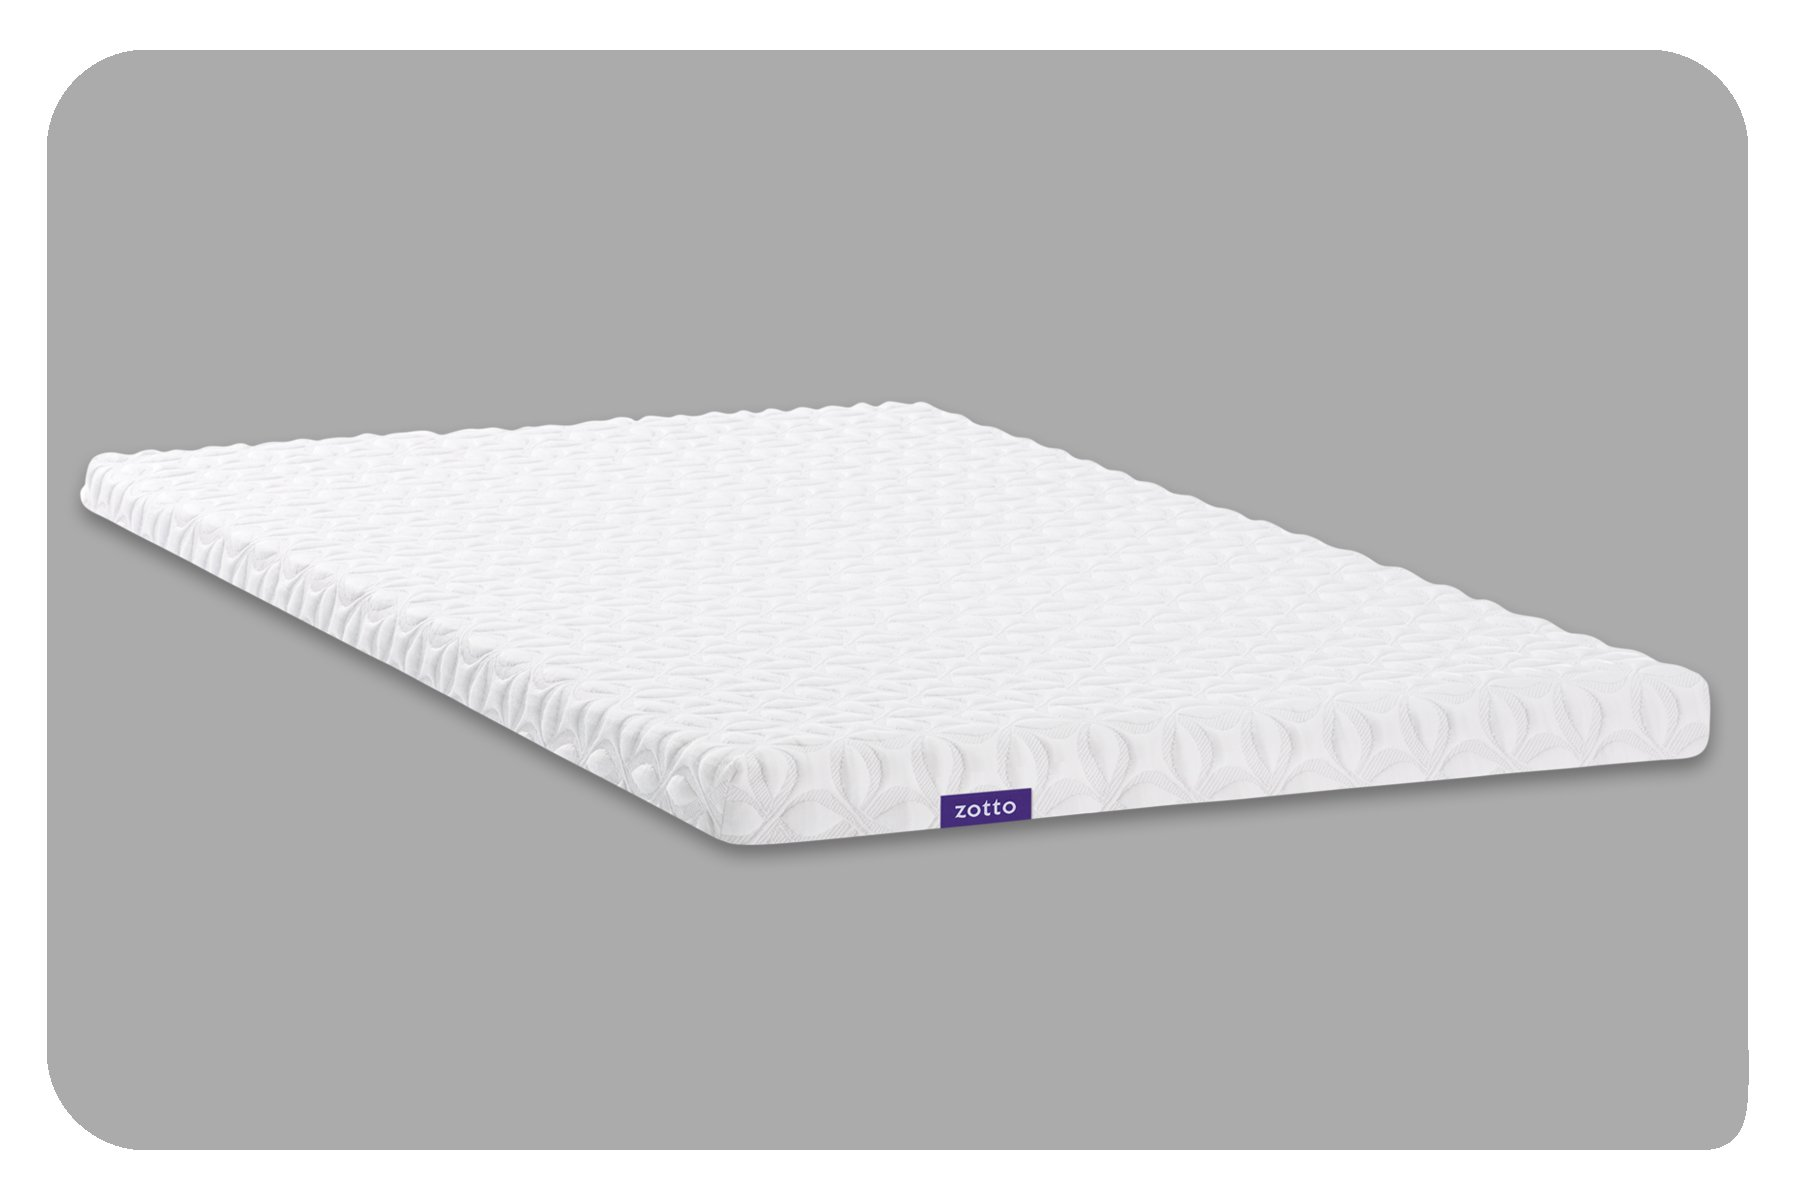 Zotto Premium 3'' Mattress Topper (Twin XL)